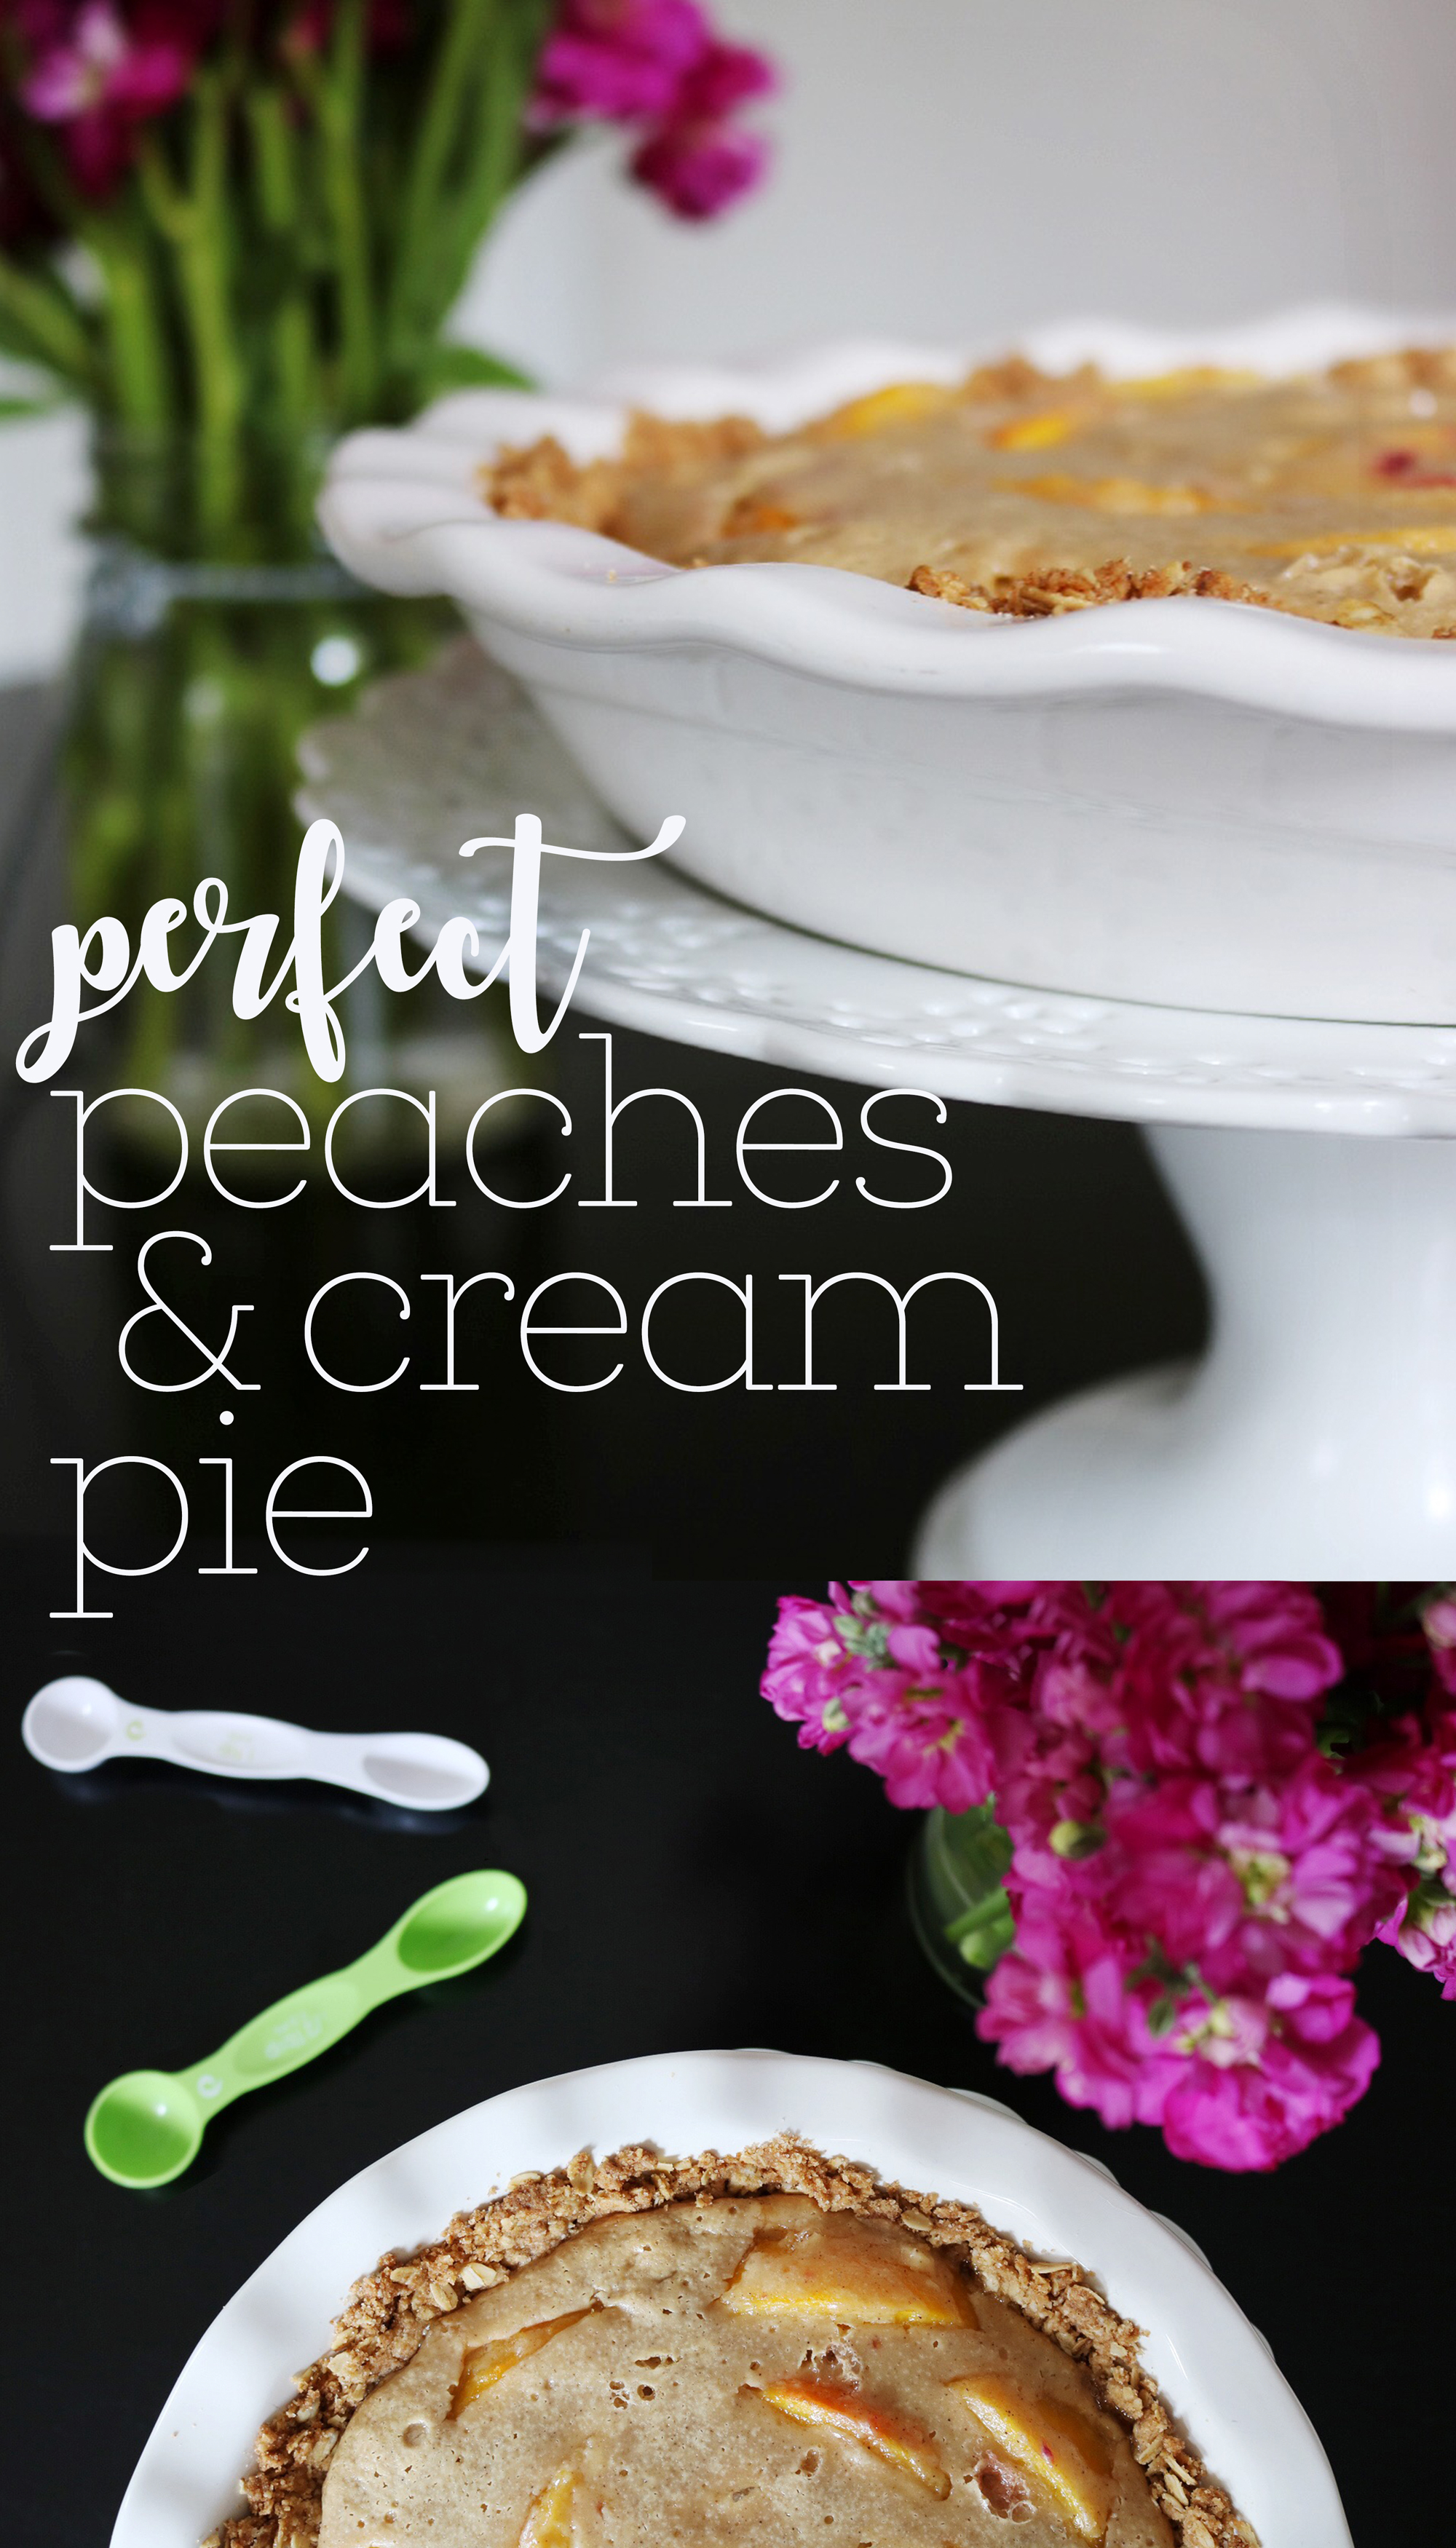 Perfect Peaches & Cream Pie Recipe